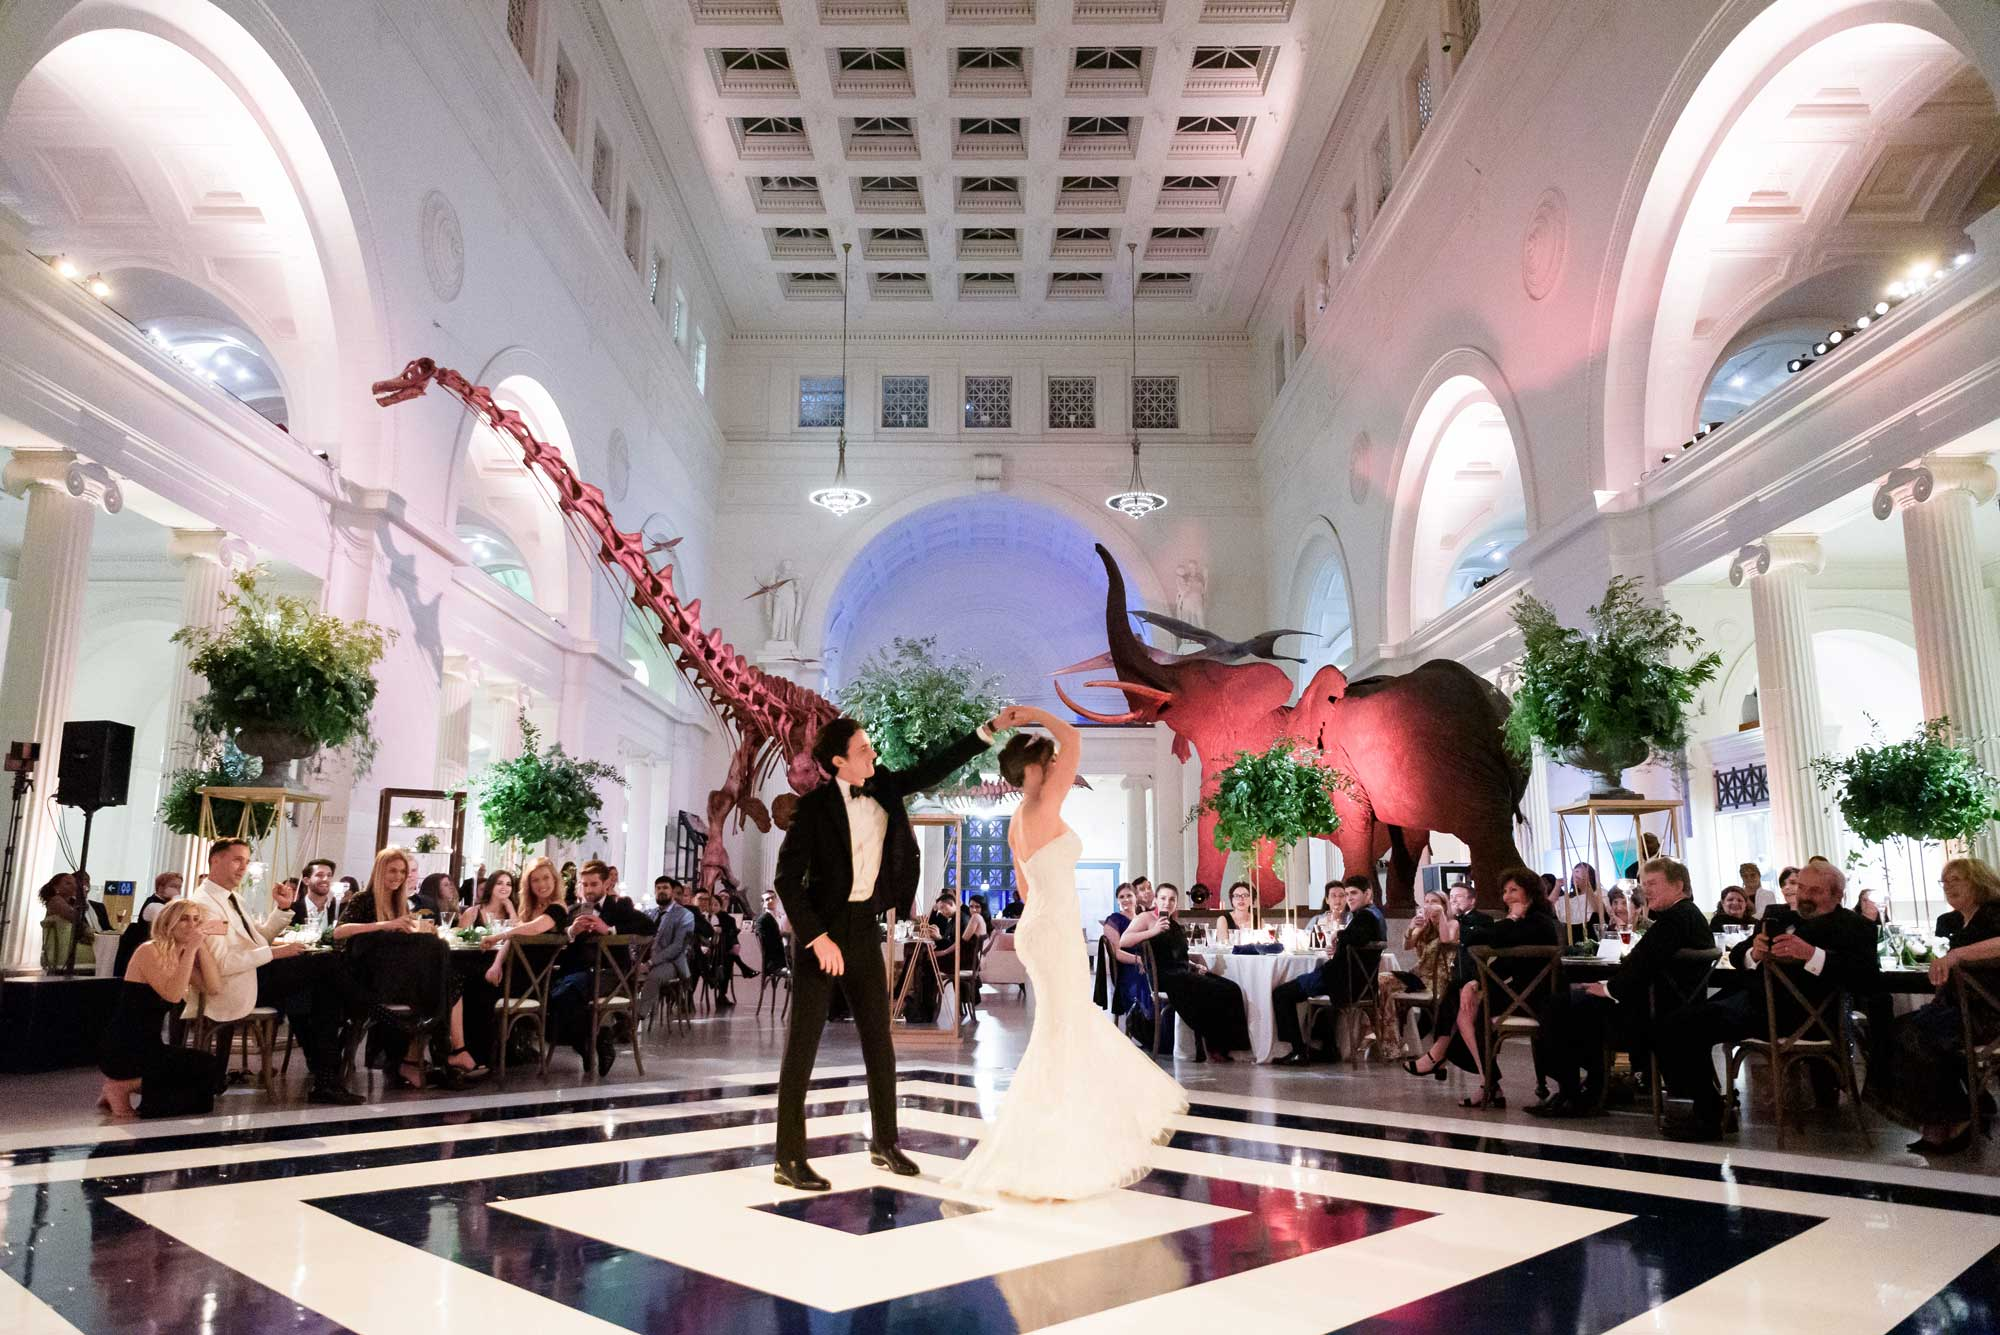 A couple shares their first dance in the center of Stanley Field Hall on a black and white dance floor. Wedding guests watch from their seats and elephants and Máximo the Titanosaur are visible in the background.